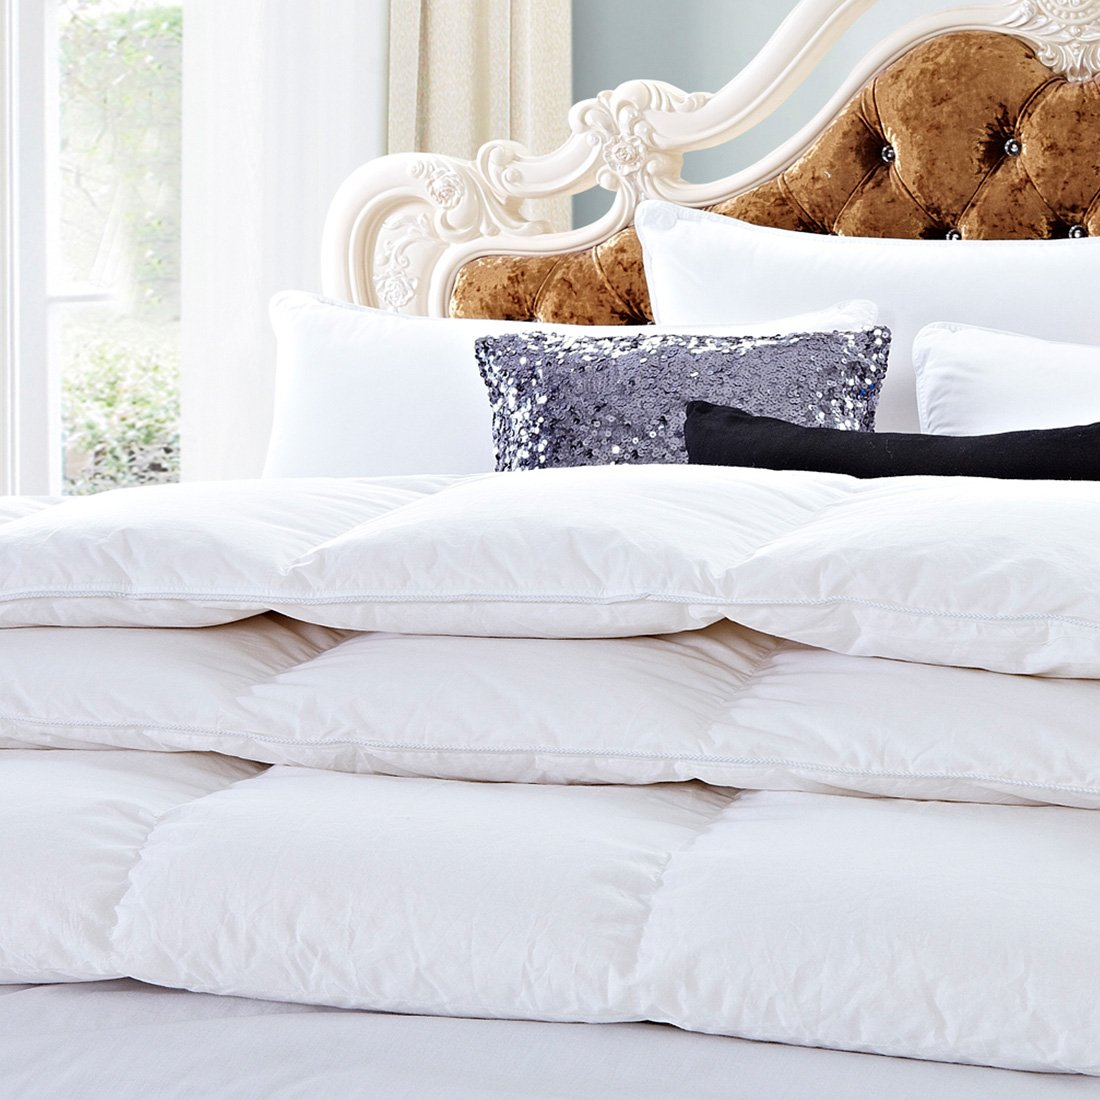 White Goose Down Comforter Full/Queen Size 600 Thread Count 100% Cotton 750+ fill power Shell Down Proof-Solid White Hypo-allergenic with Corner Tab by SHEONE (Image #3)